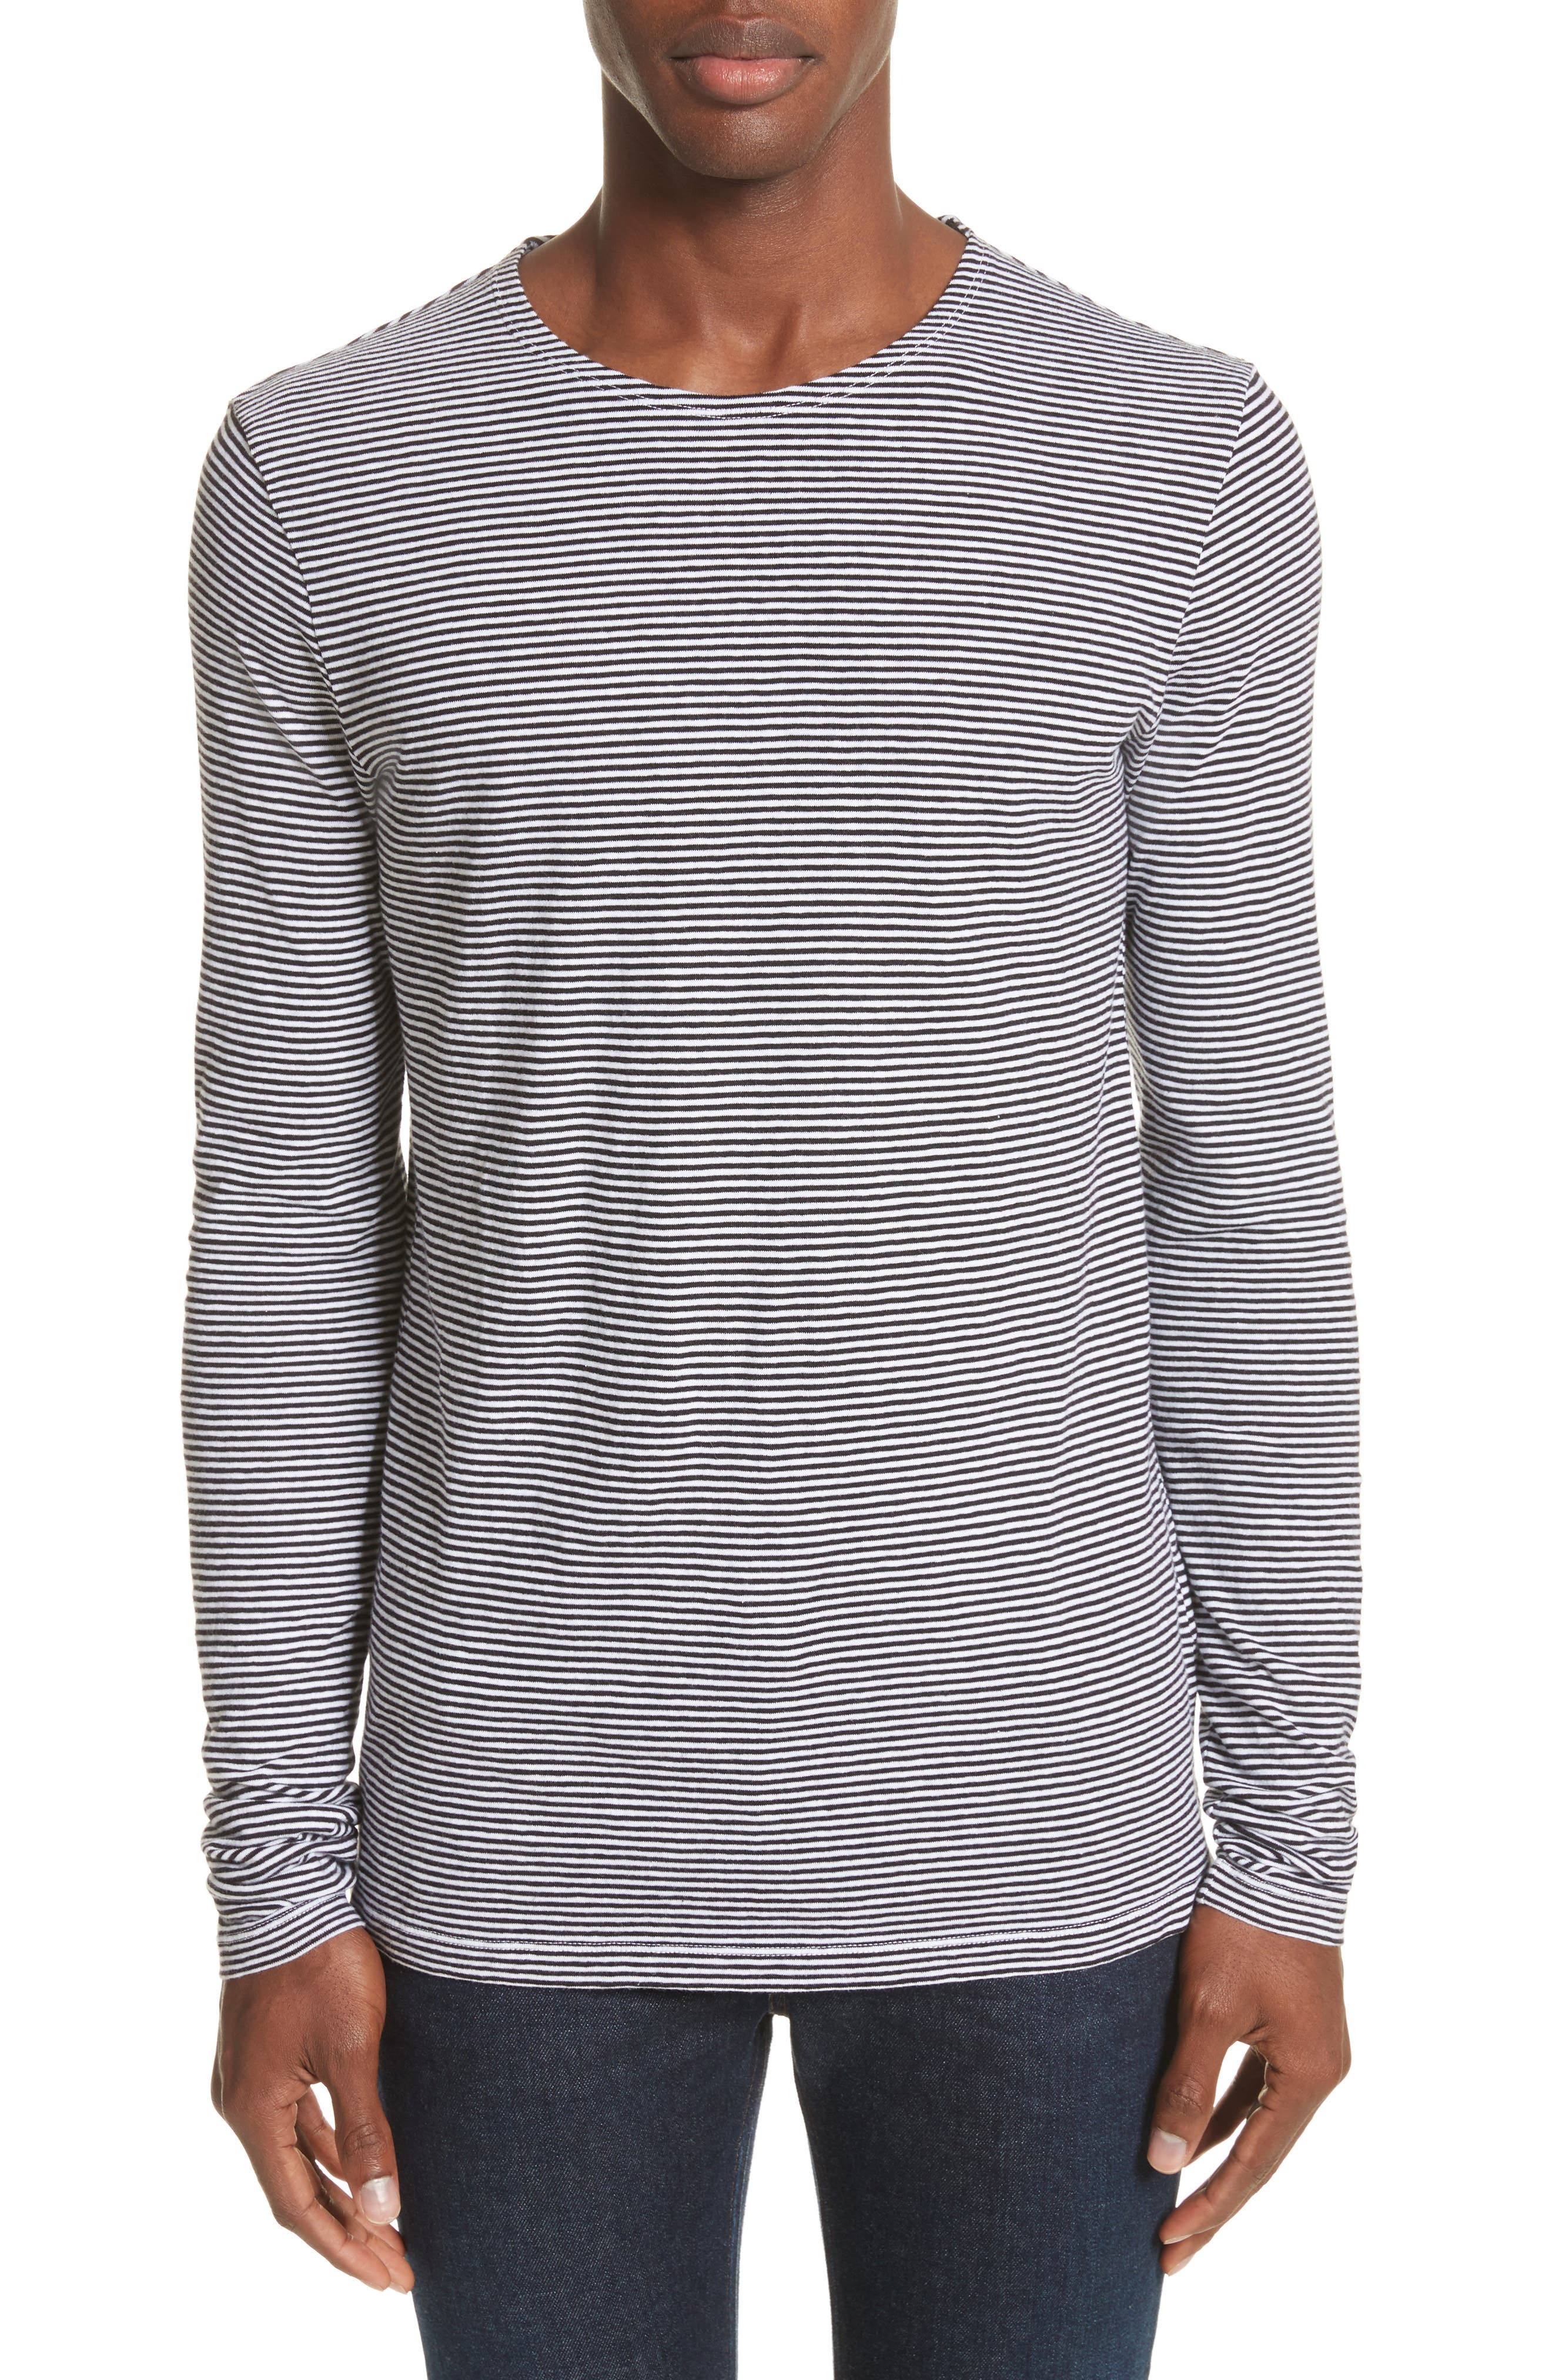 Main Image - Burberry Tayford Stripe Long Sleeve T-Shirt